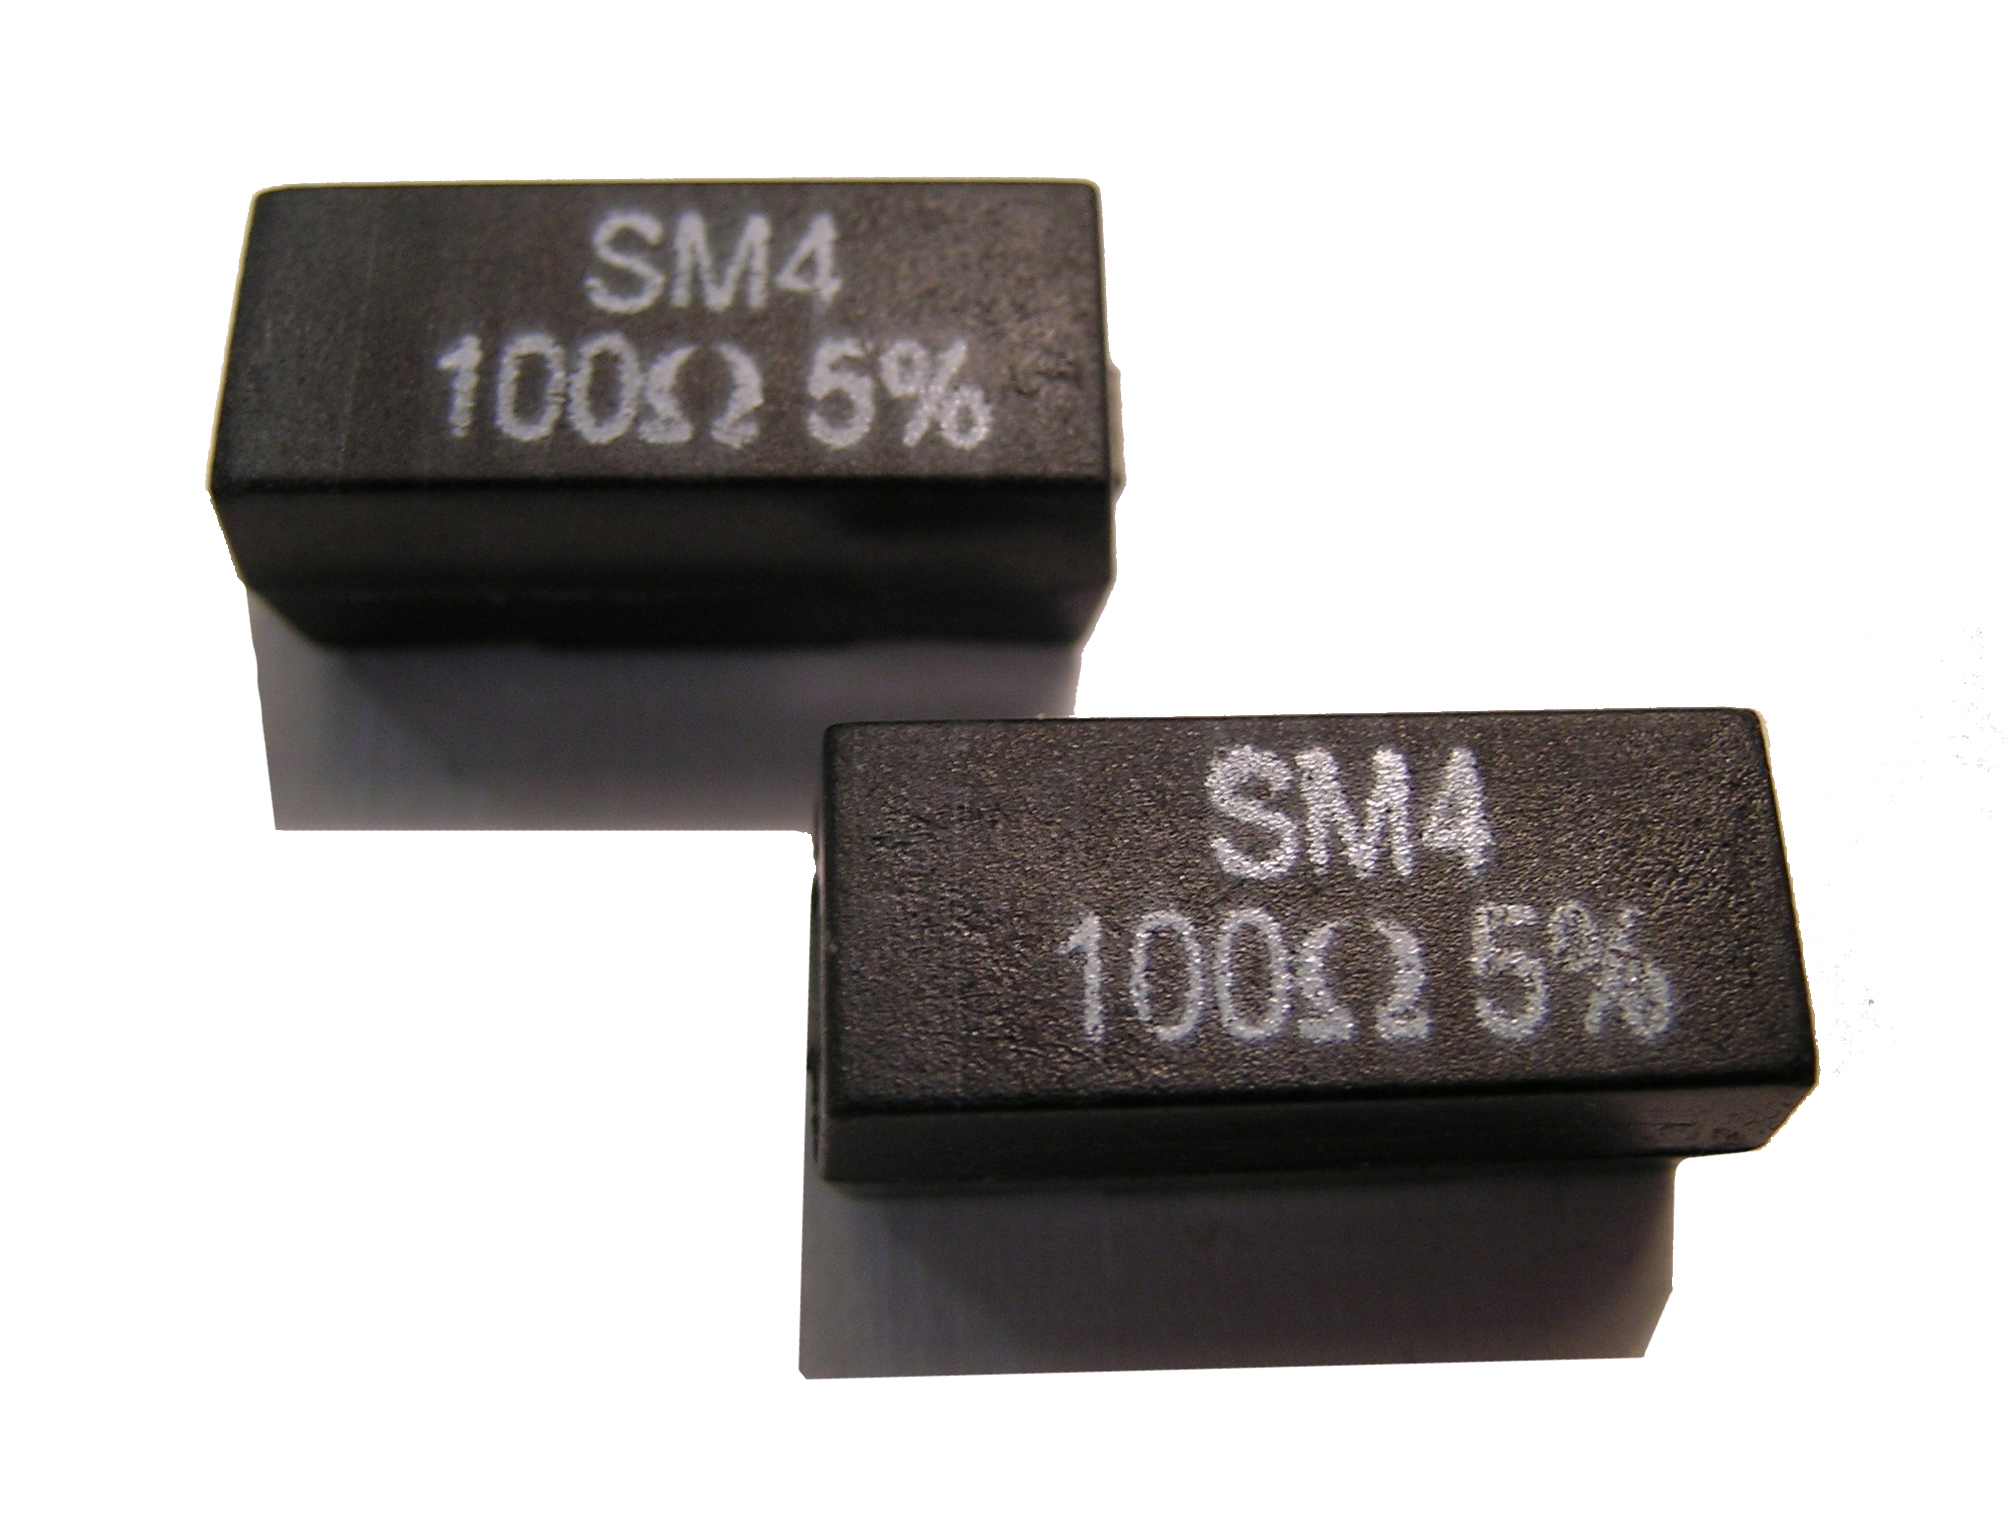 SMD wirewound resistor suits high energy pulse applications